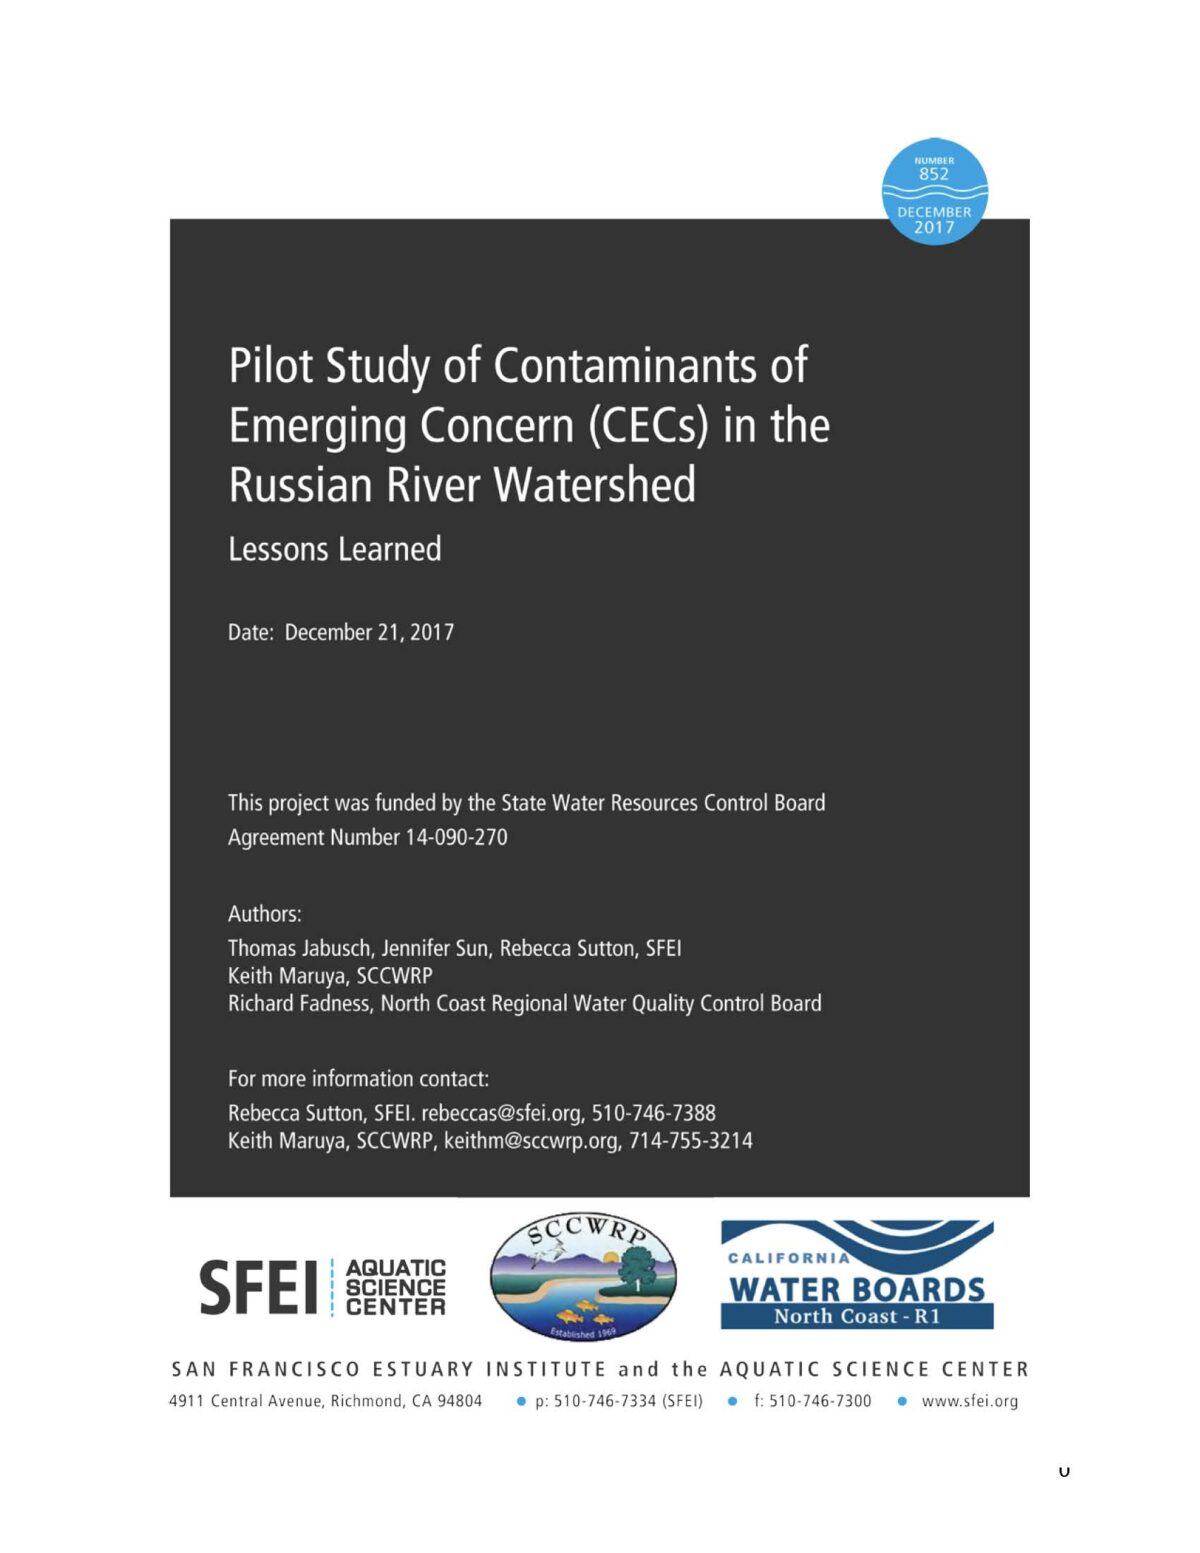 Pilot Study of Contaminants of Emerging Concern (CECs) in the Russian River Watershed: Lessons Learned